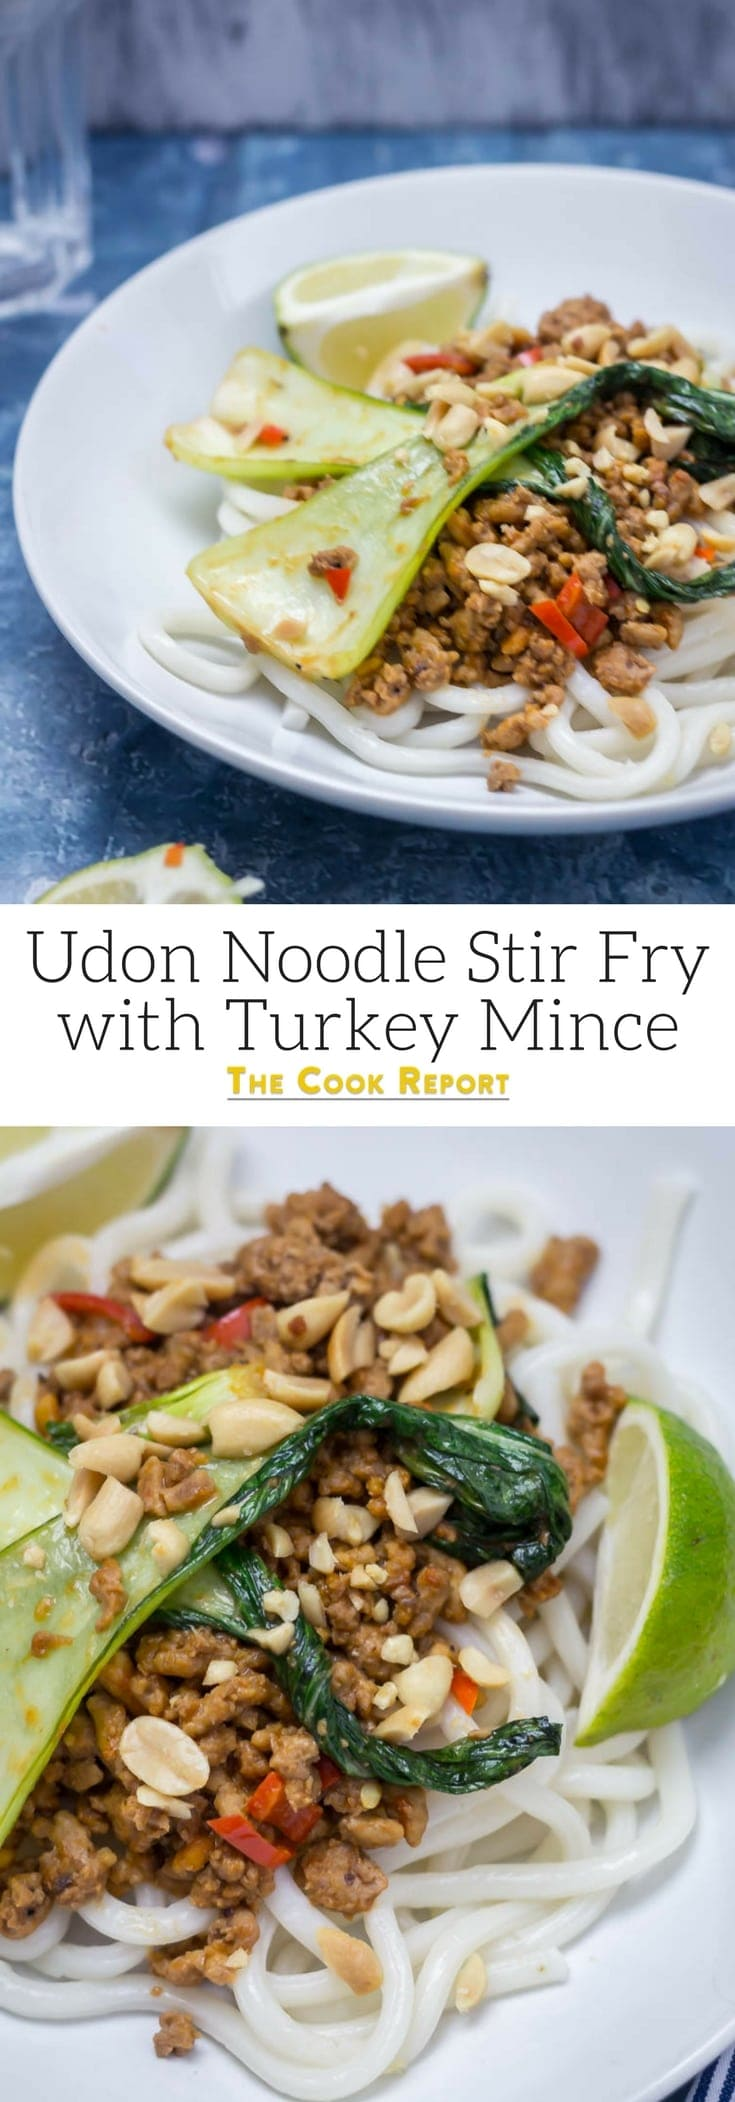 Lighten things up by switching your usual chicken or pork for turkey mince in this simple and tasty udon noodle stir fry. Perfect for a healthy midweek dinner, this recipe is ready in 20 minutes! #turkeyrecipe #udonnoodles #stirfry #thecookreport